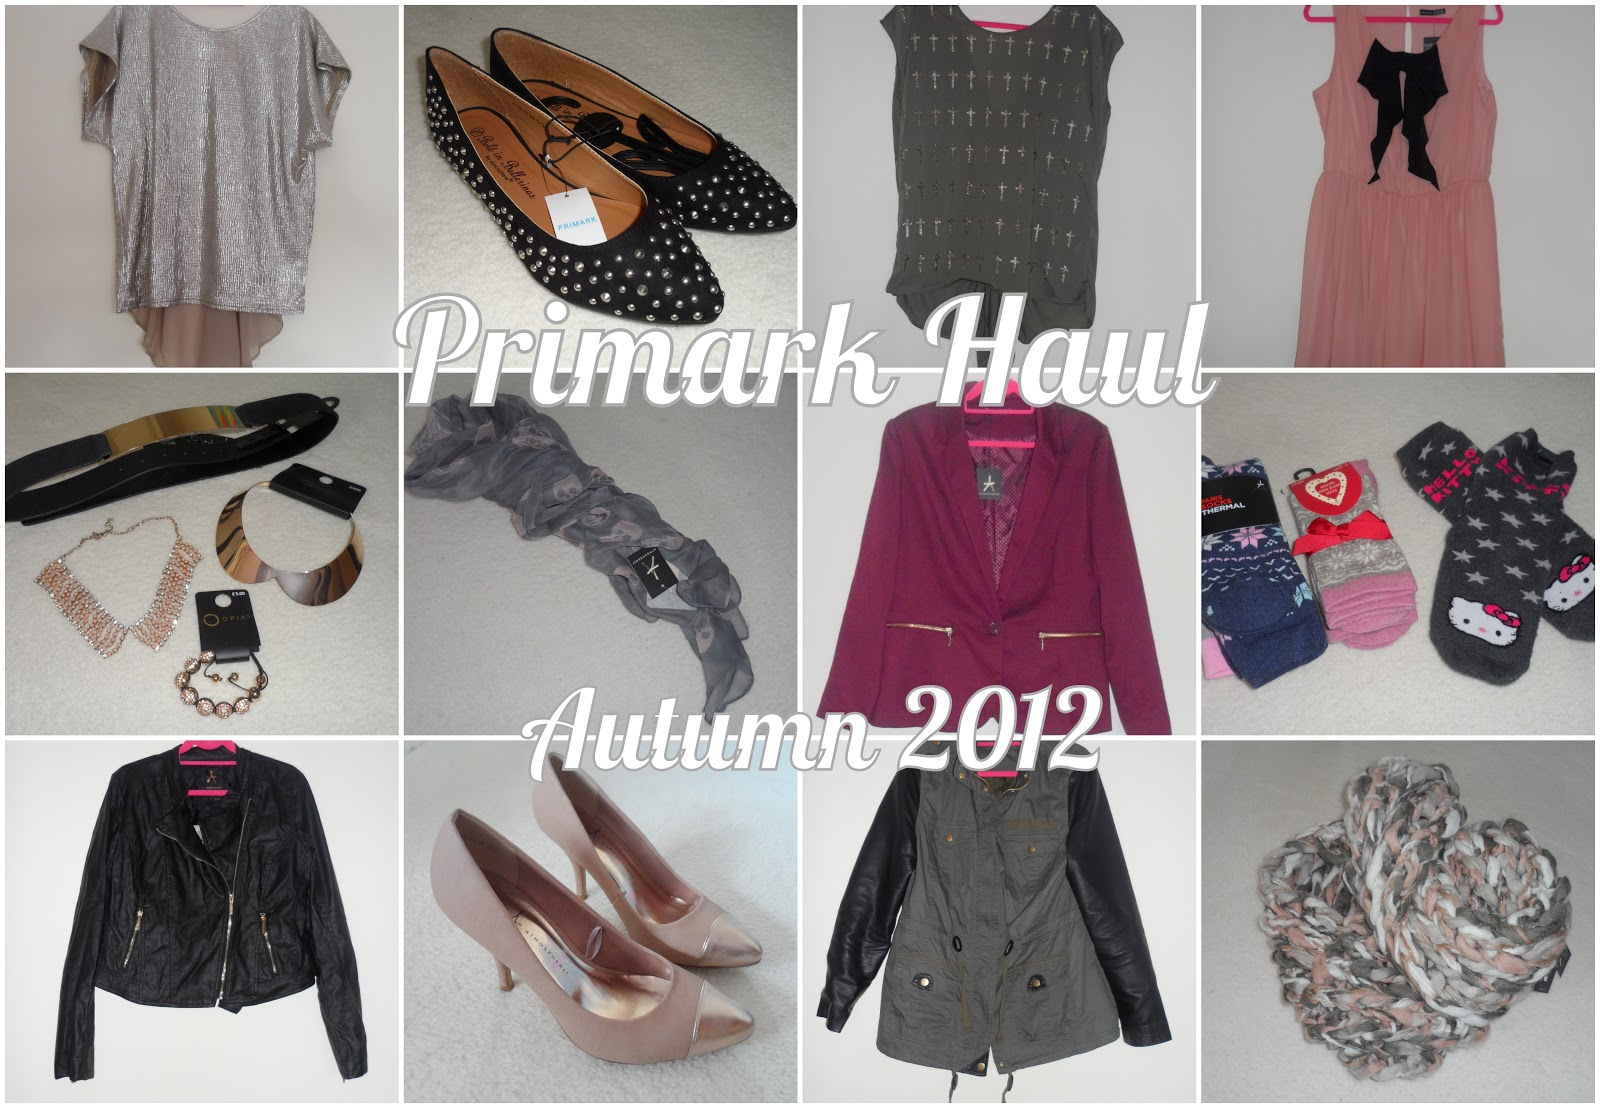 f04d6a48f4 It s been a while since I did a proper Primark haul. I couldn t really  think about Autumn clothes until after my holiday but since I ve been back  it feels ...